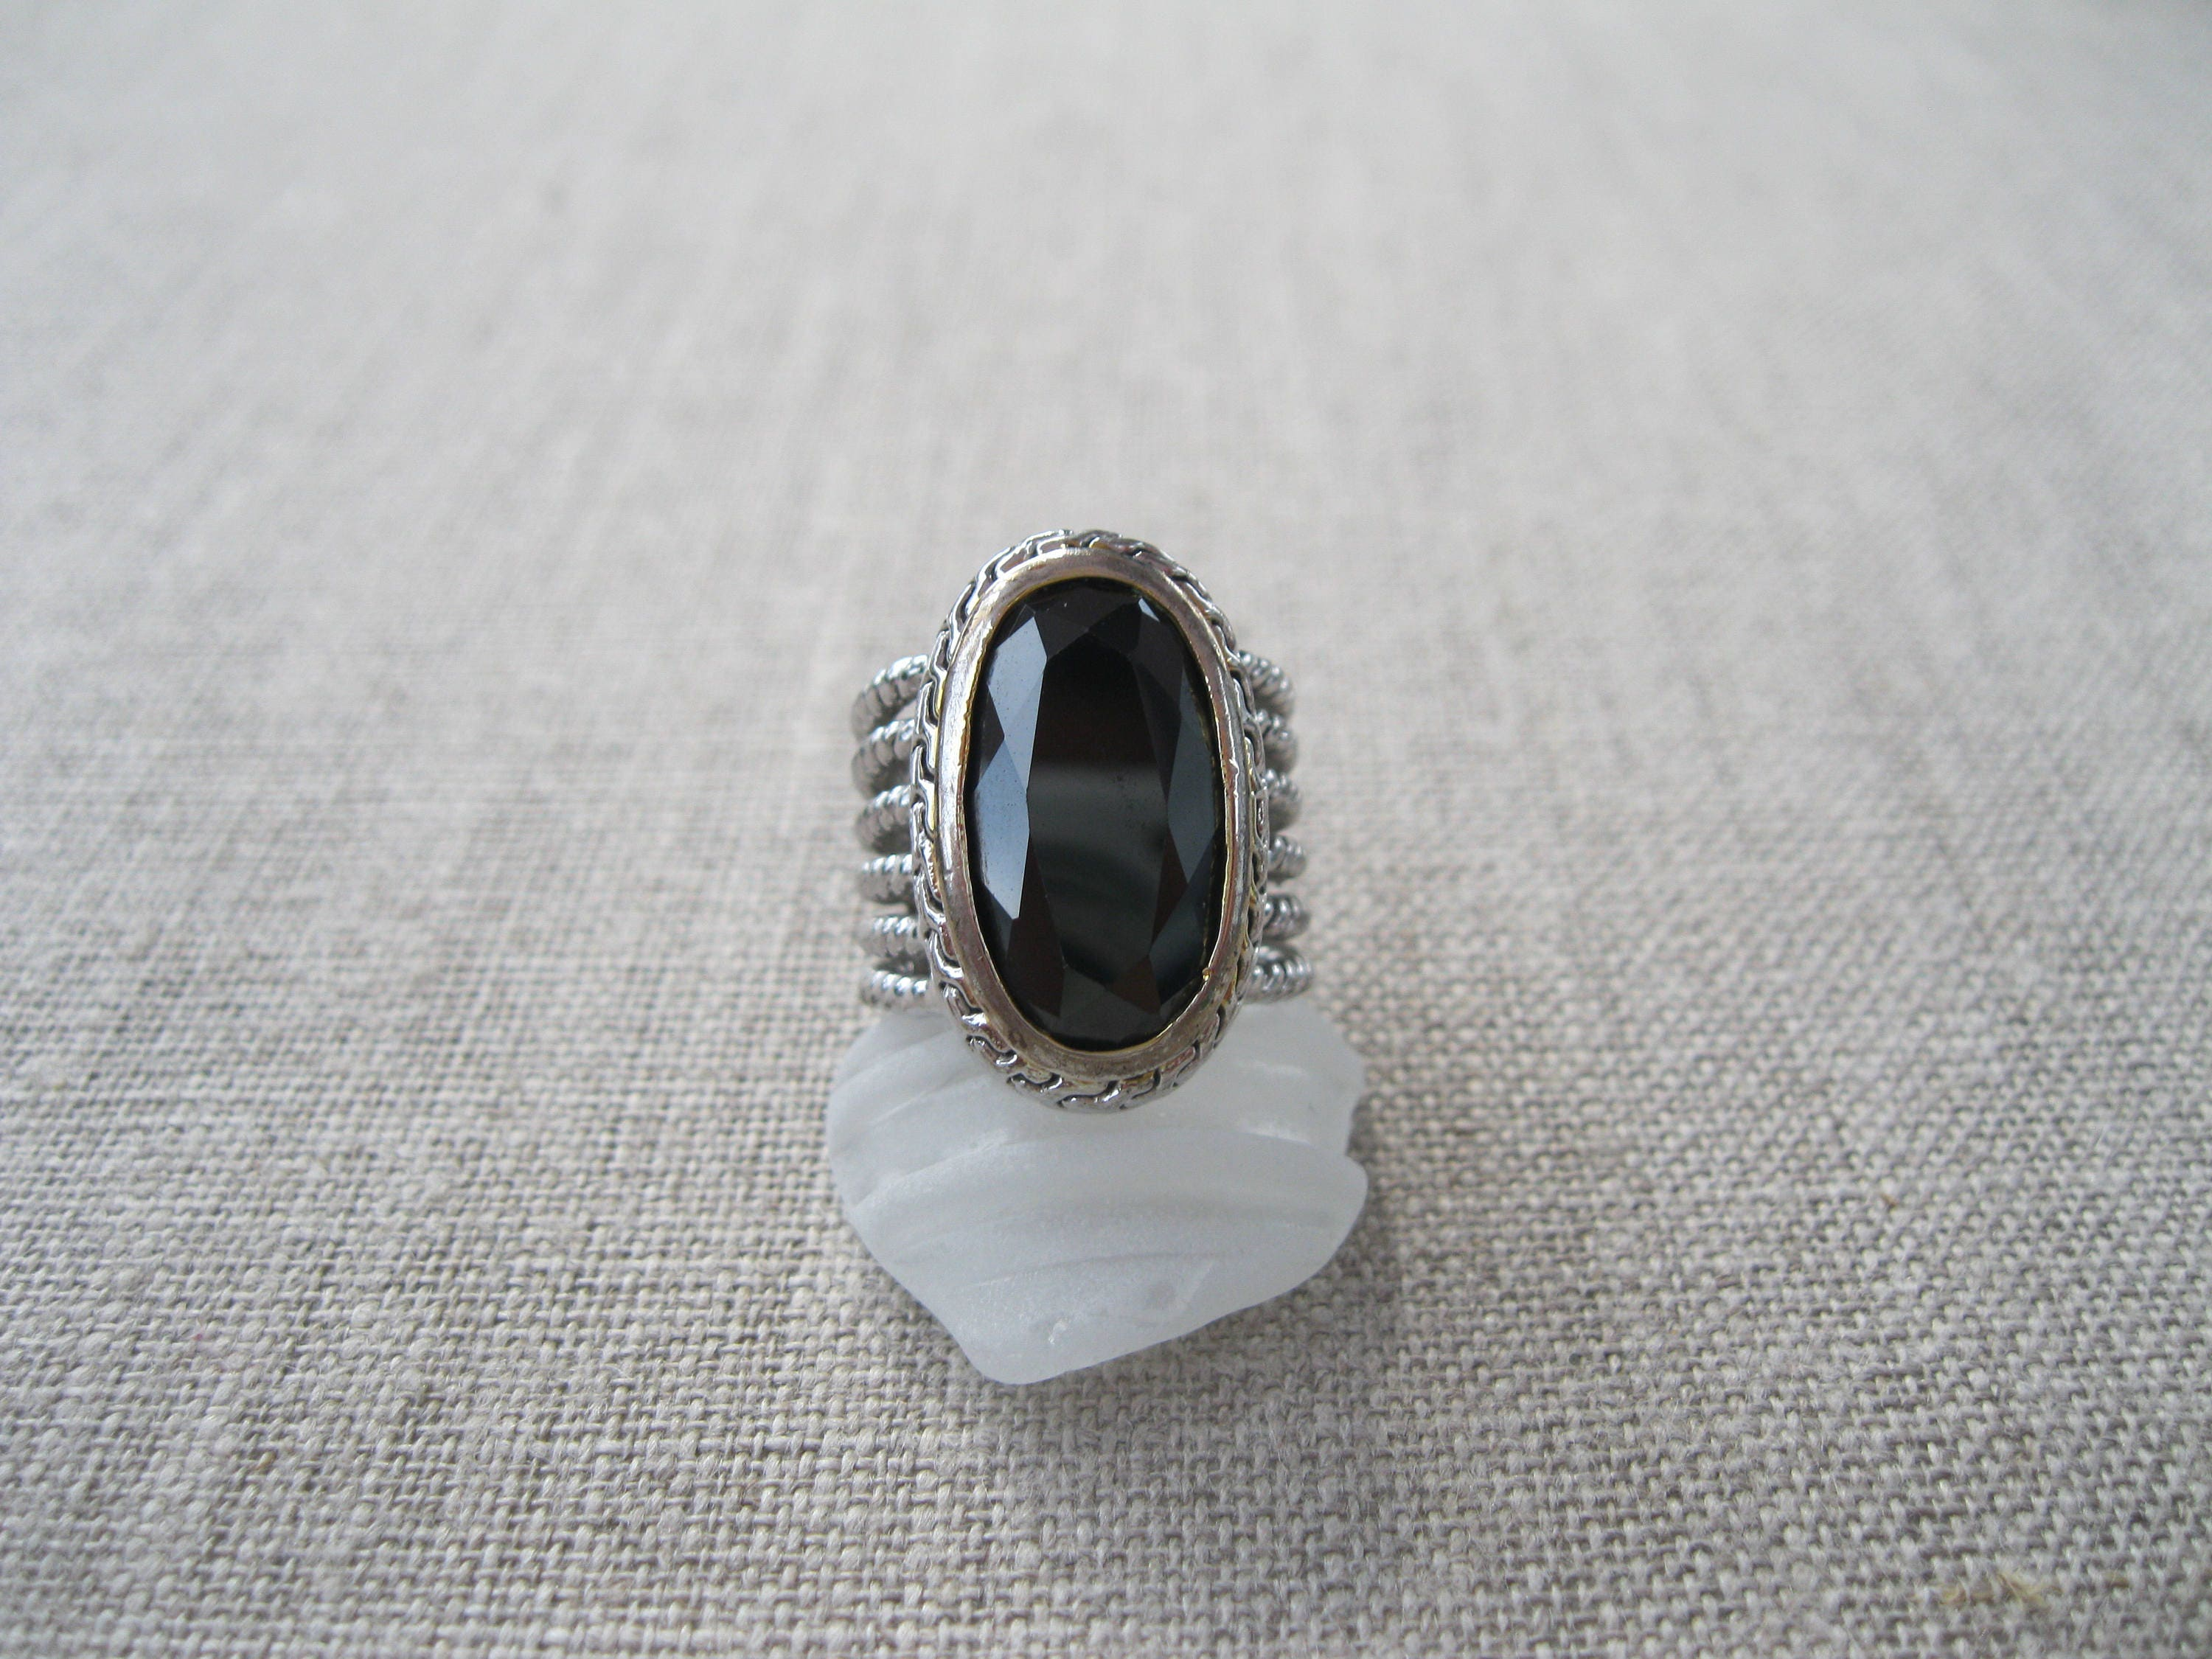 sale 18k hge white gold plated black onyx ring size 6 1 2